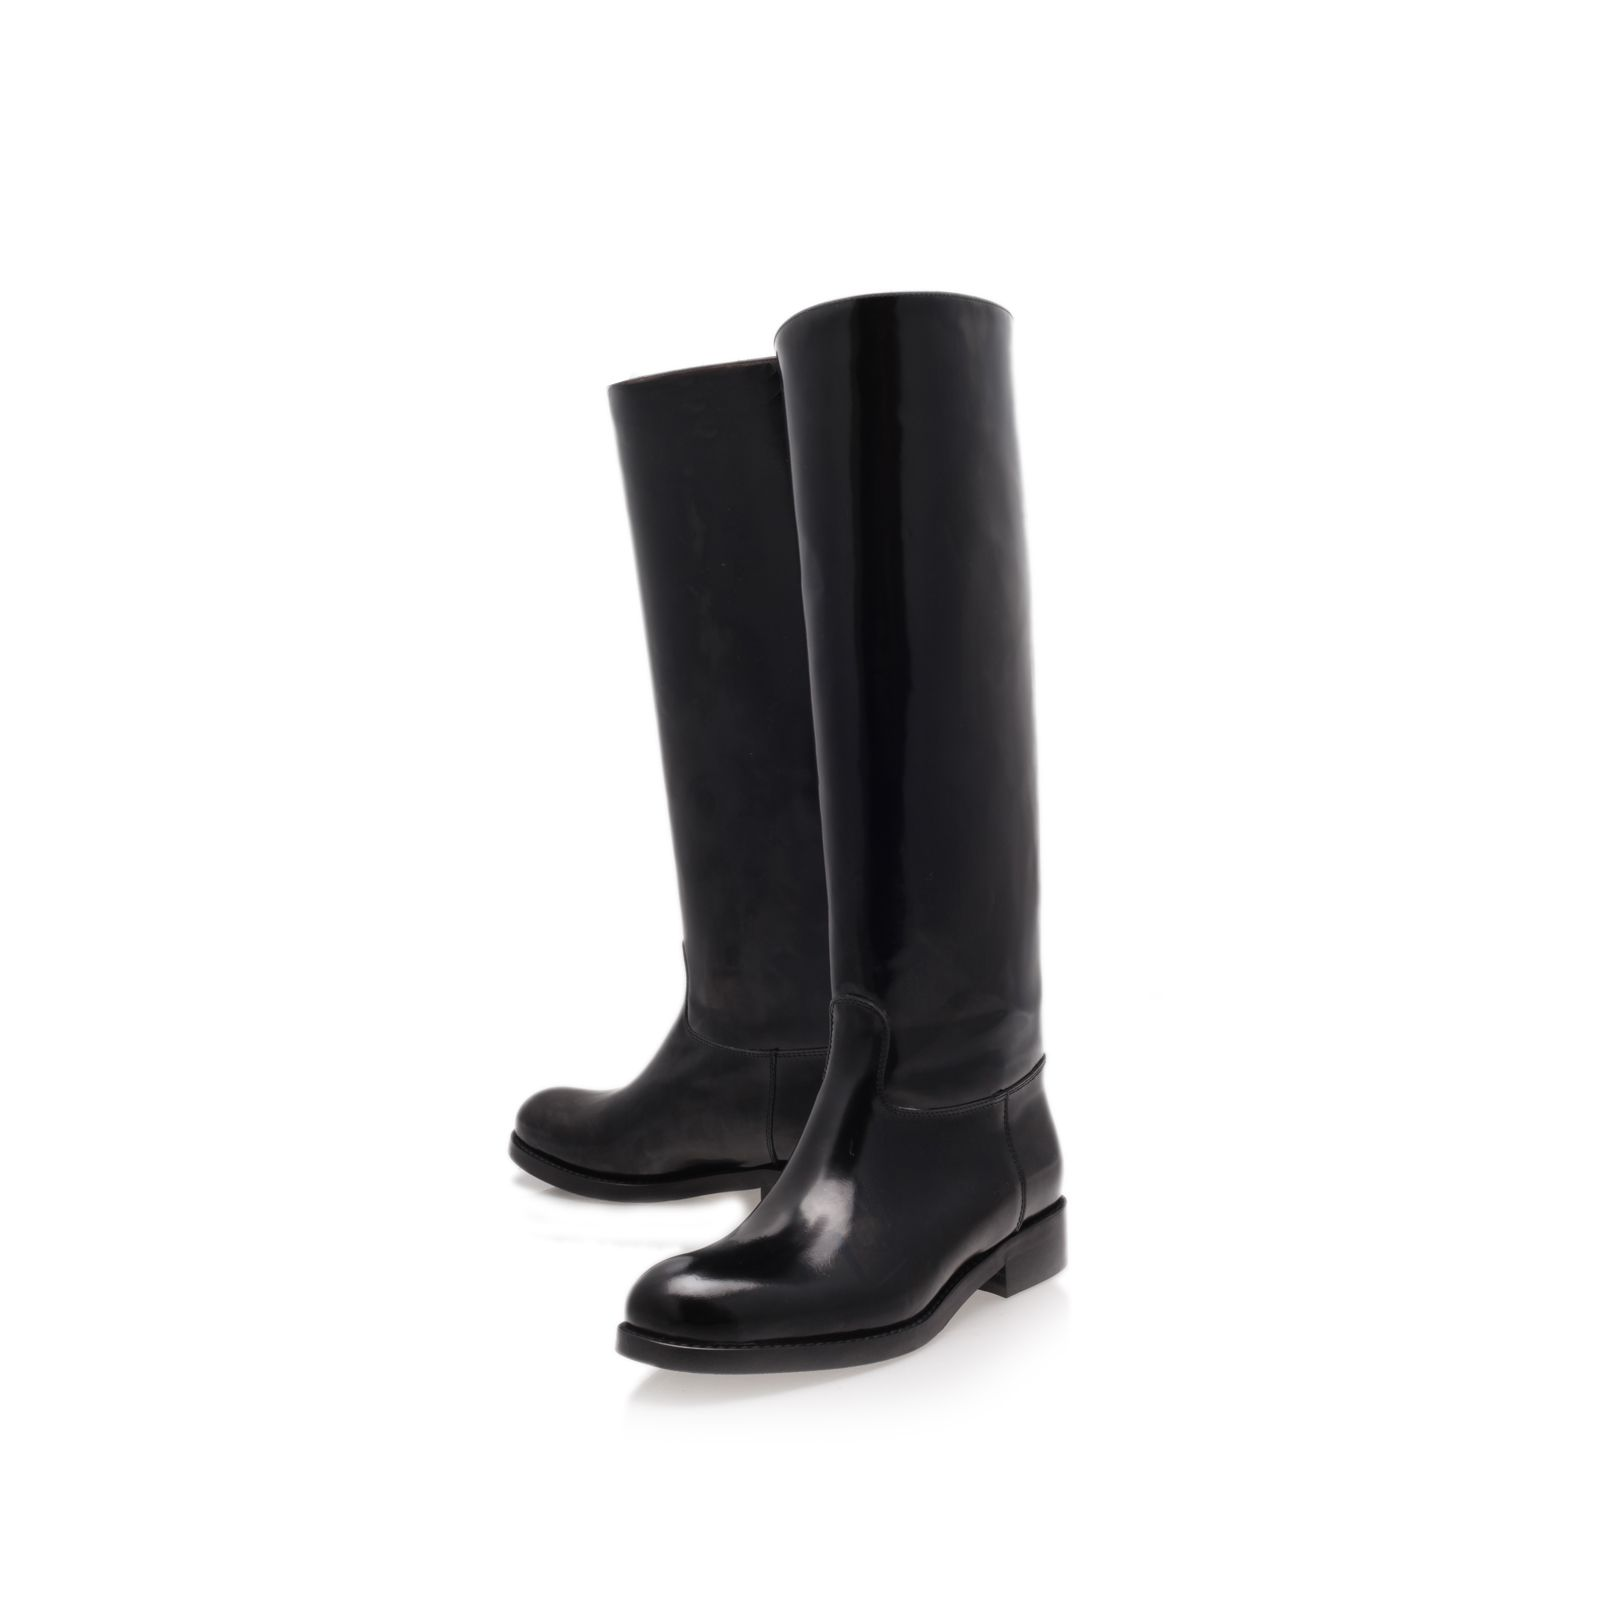 Shaftesbury knee boots